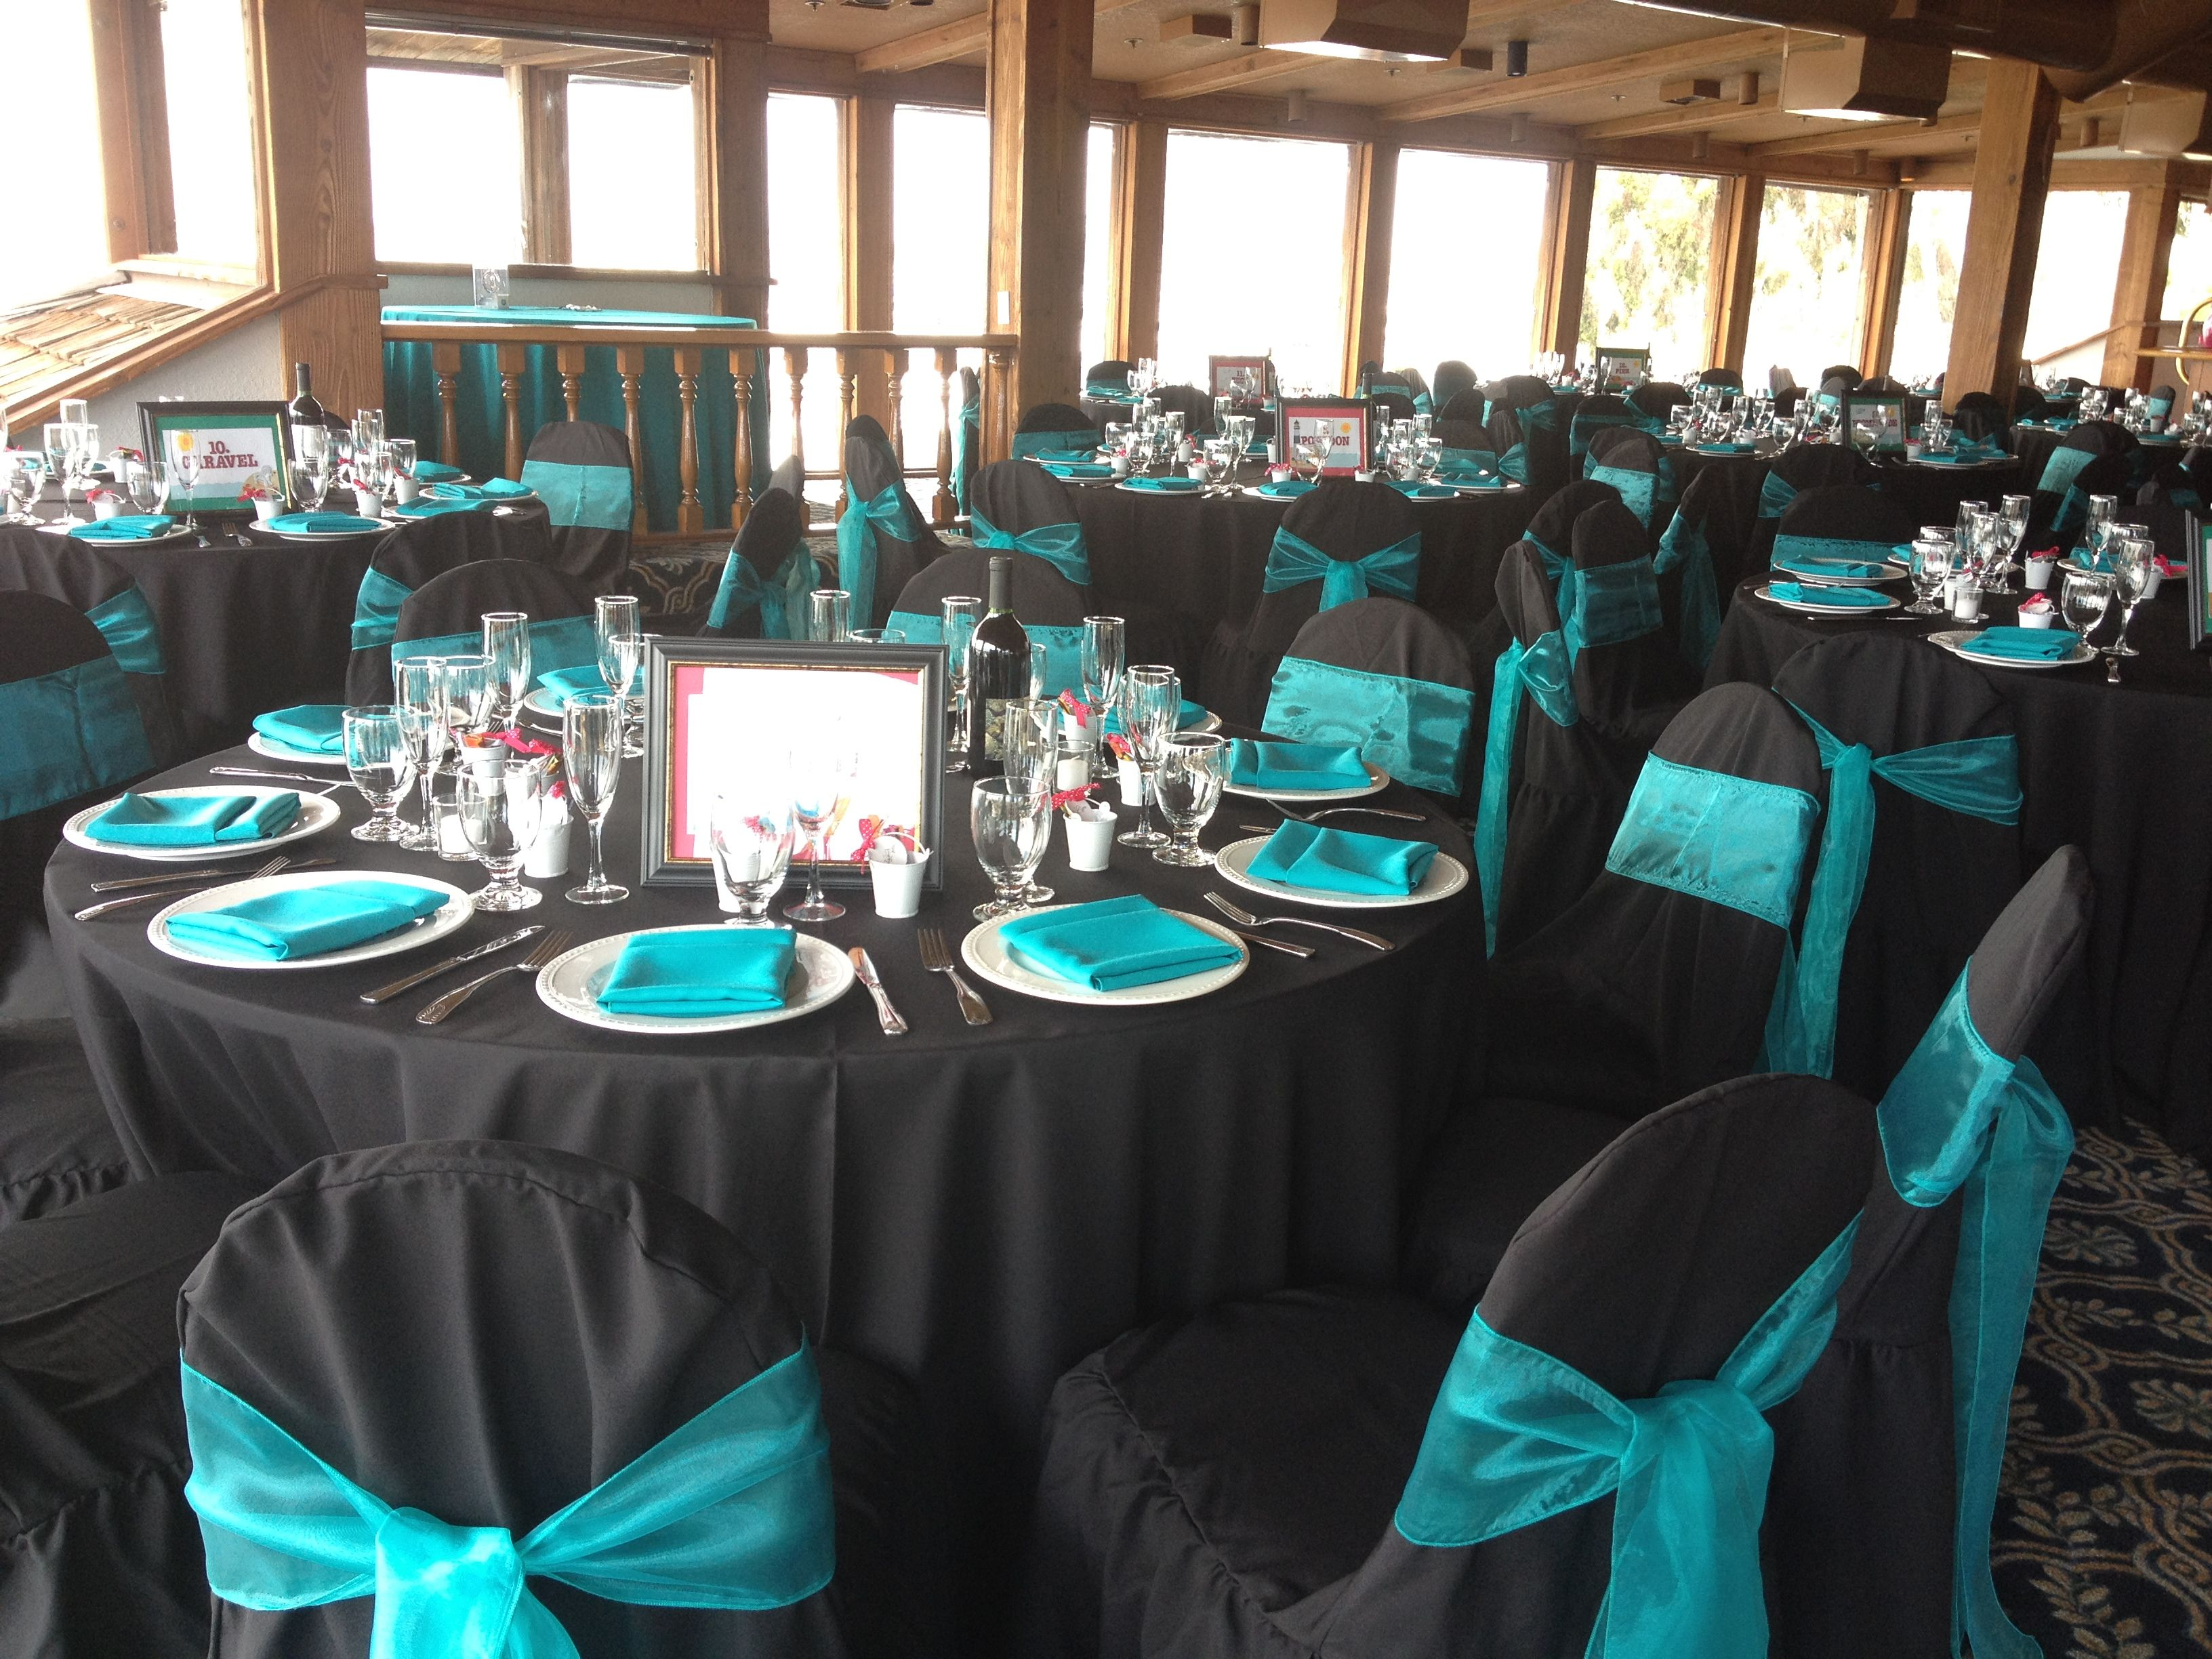 Marina Village Venue Black Linens with Turquoise Napkins along